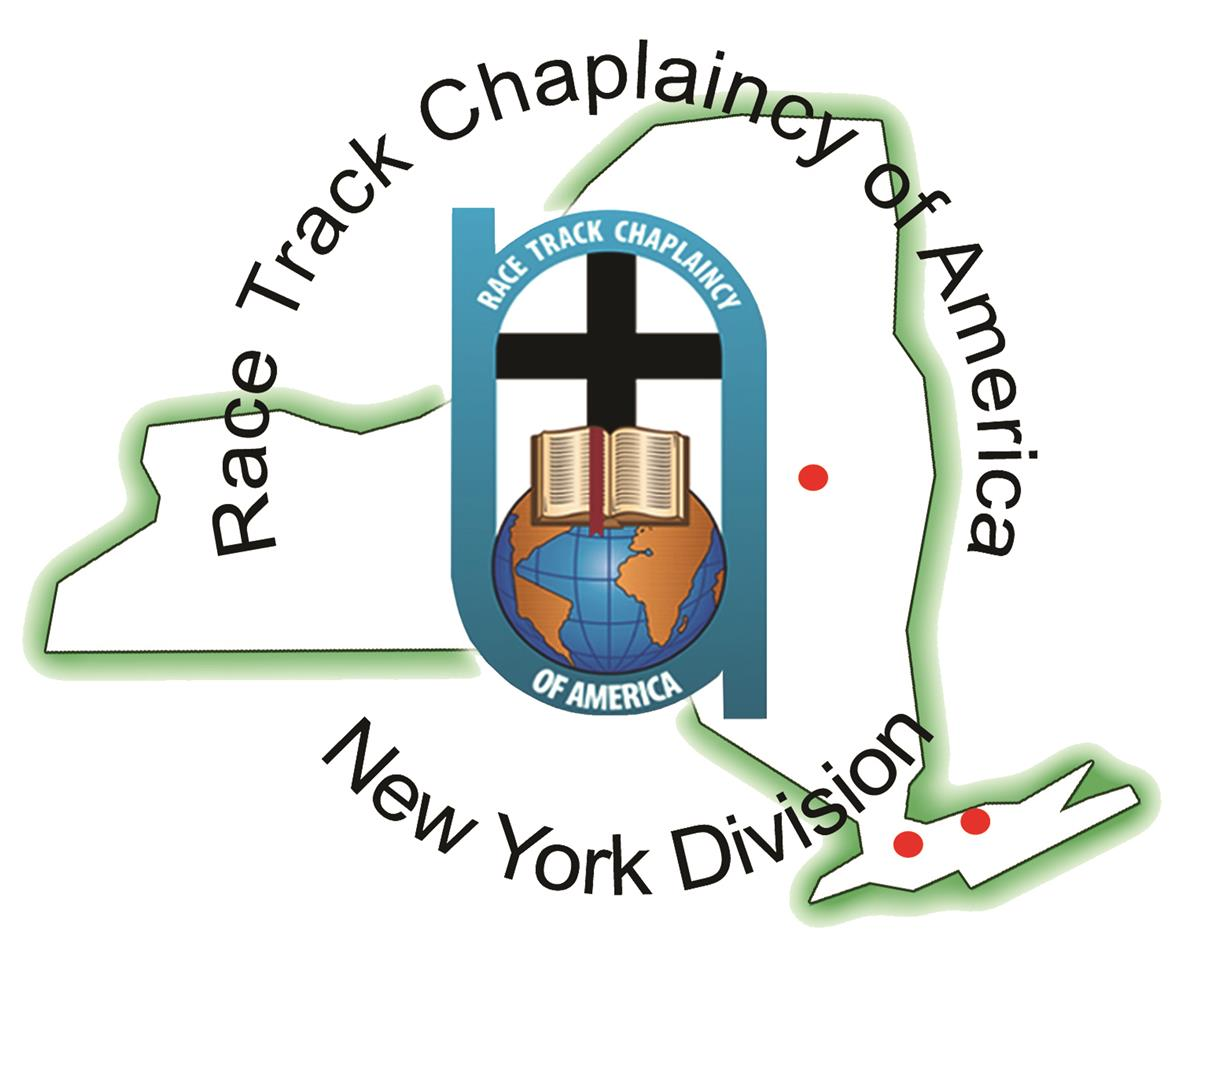 New York Racetrack Chaplaincy: Working to Serve the Backstretch Community